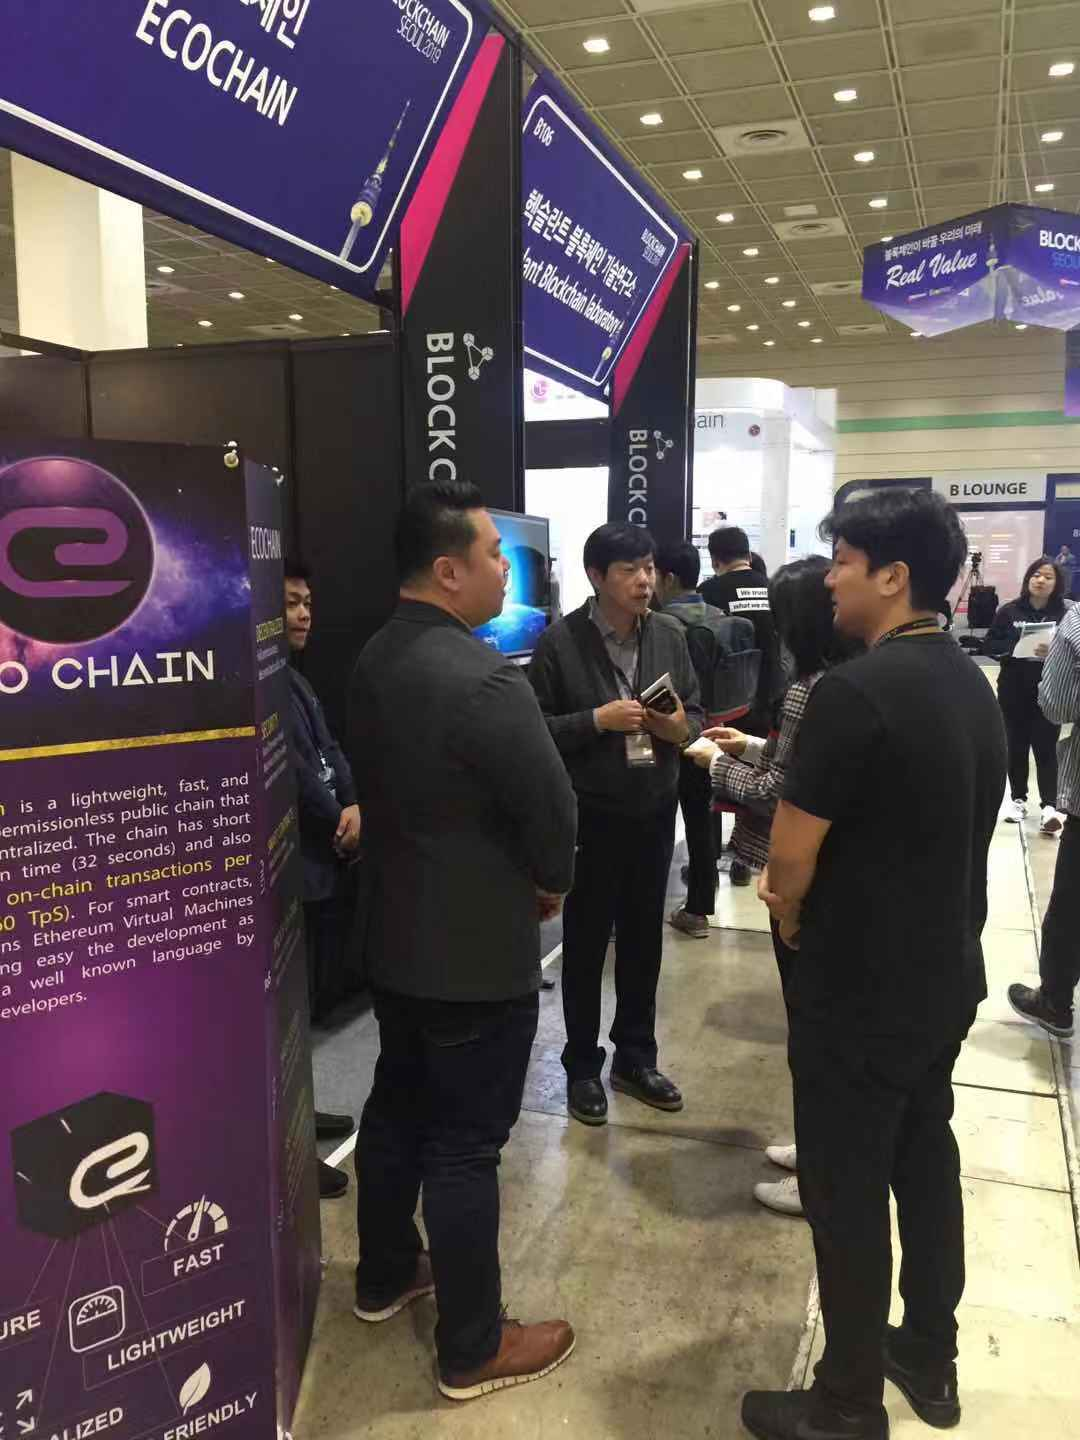 ECOC Seoul event booth